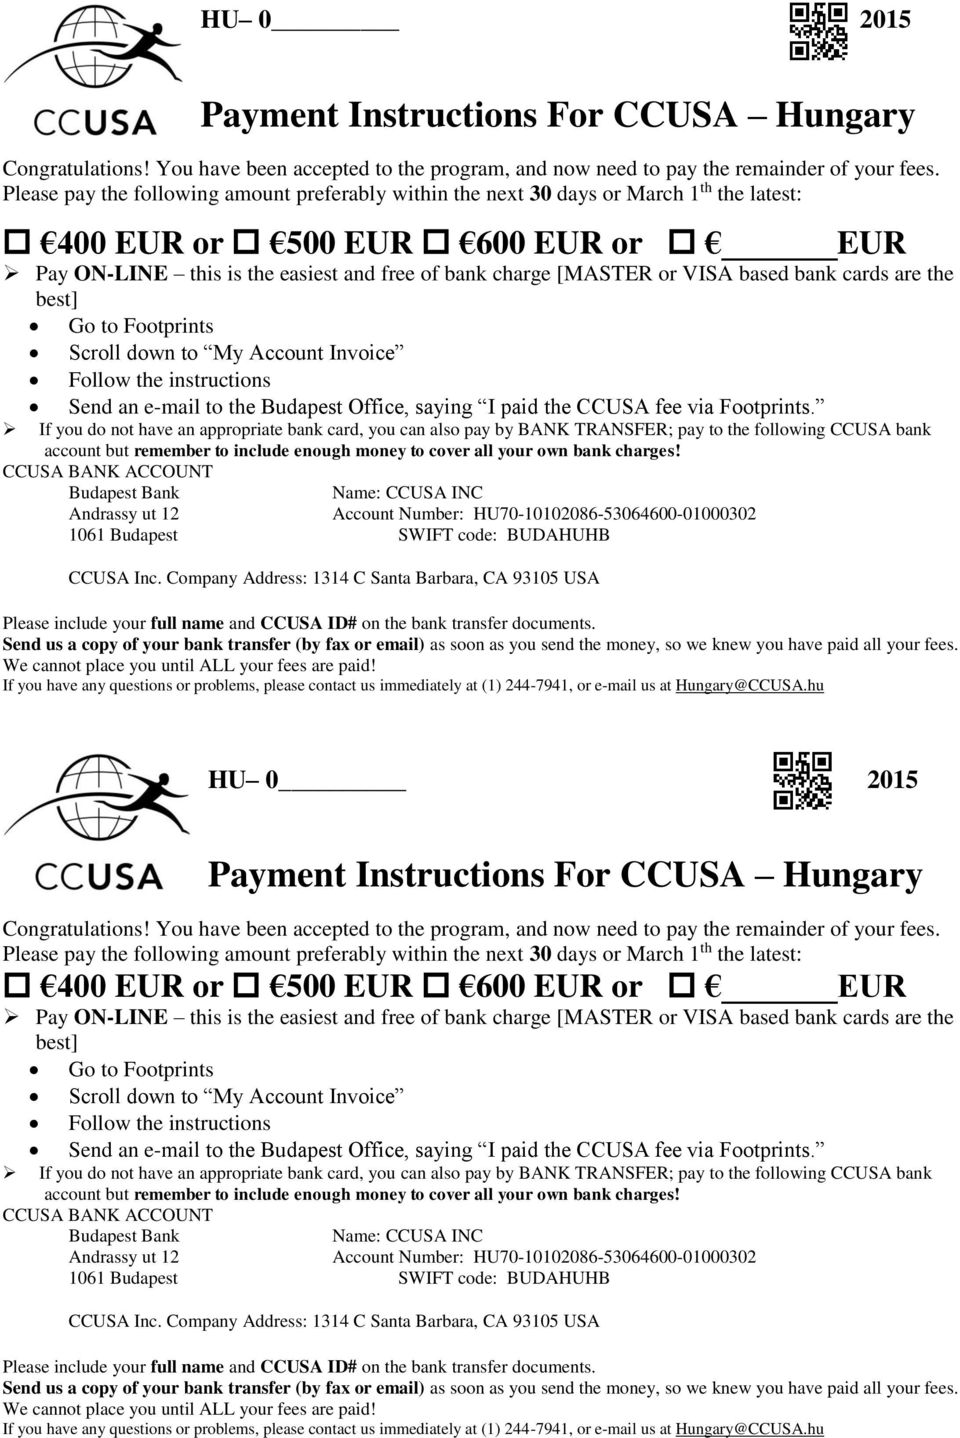 based bank cards are the best] Go to Footprints Scroll down to My Account Invoice Follow the instructions Send an e-mail to the Budapest Office, saying I paid the CCUSA fee via Footprints.